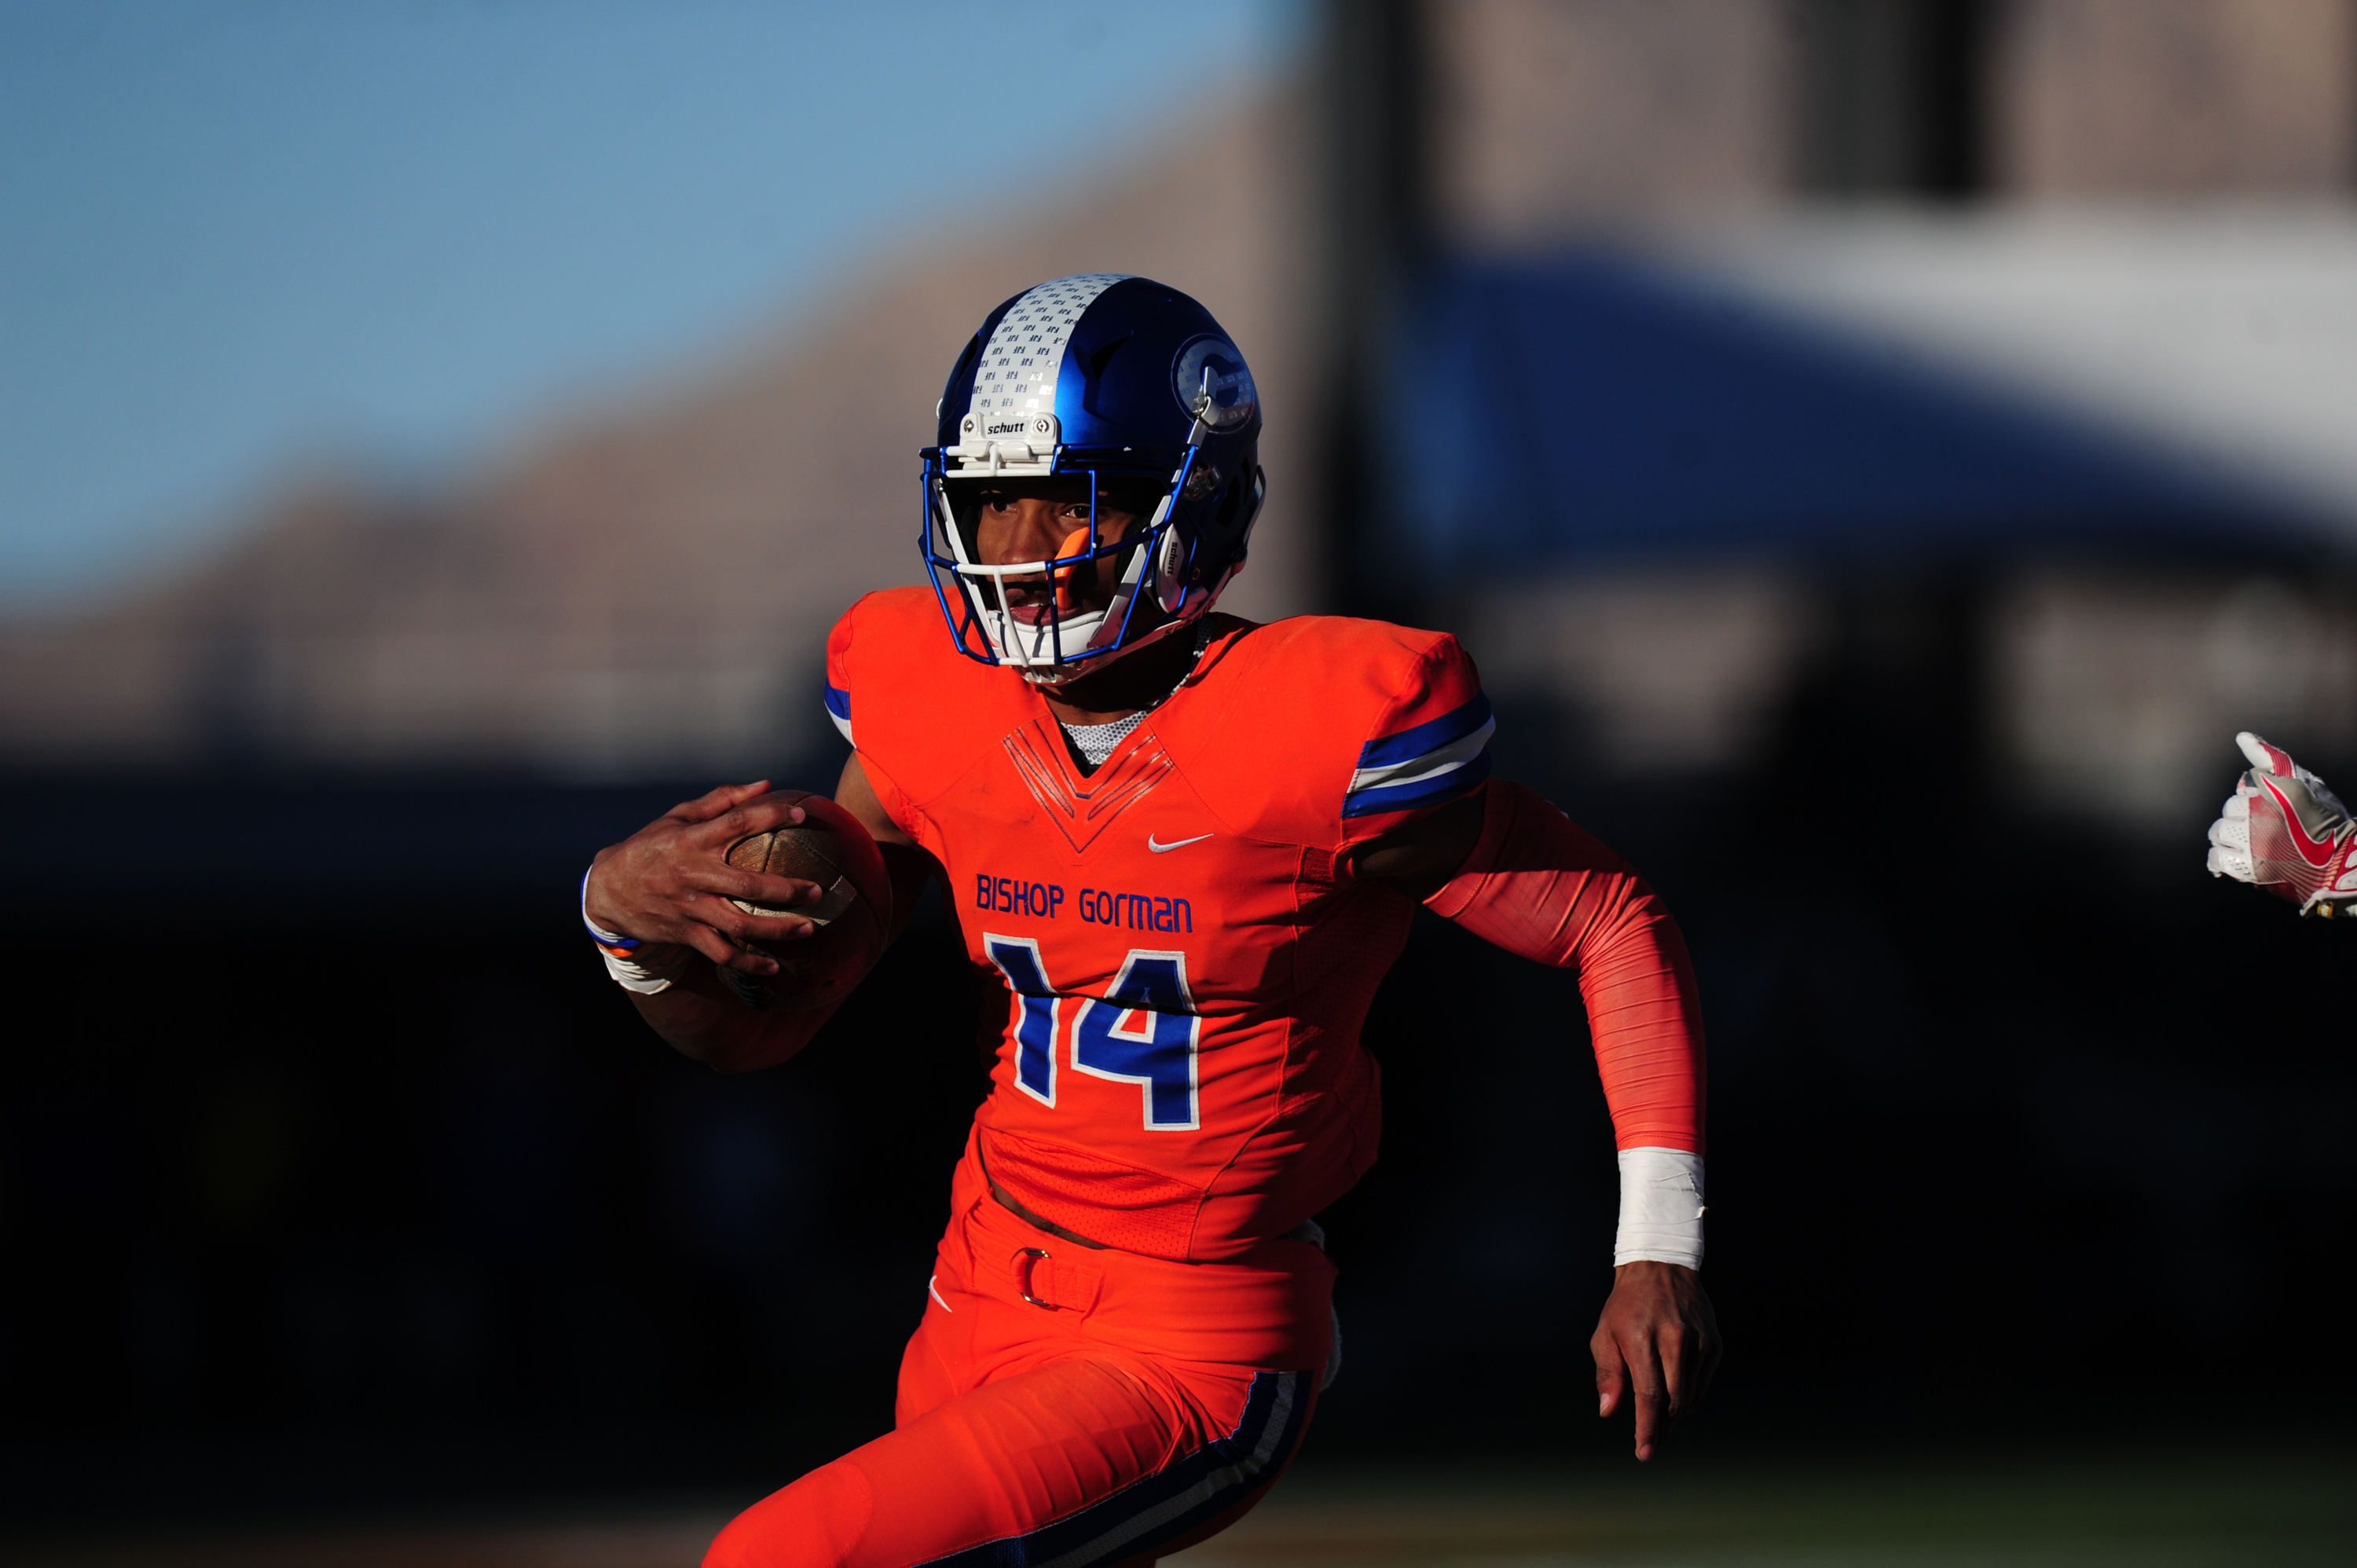 LAS VEGAS, NV - DECEMBER 03: Bishop Gorman quarterback Dorian Thompson-Robinson rushes for a touchdown against the Liberty Patriots in the second half of the NIAA class 4A championship game on December 03, 2016, at Sam Boyd Stadium in Las Vegas, NV. Gorman defeated Liberty 84-8. (Icon Sportswire via AP Images) ORG XMIT: 274672 [Via MerlinFTP Drop]